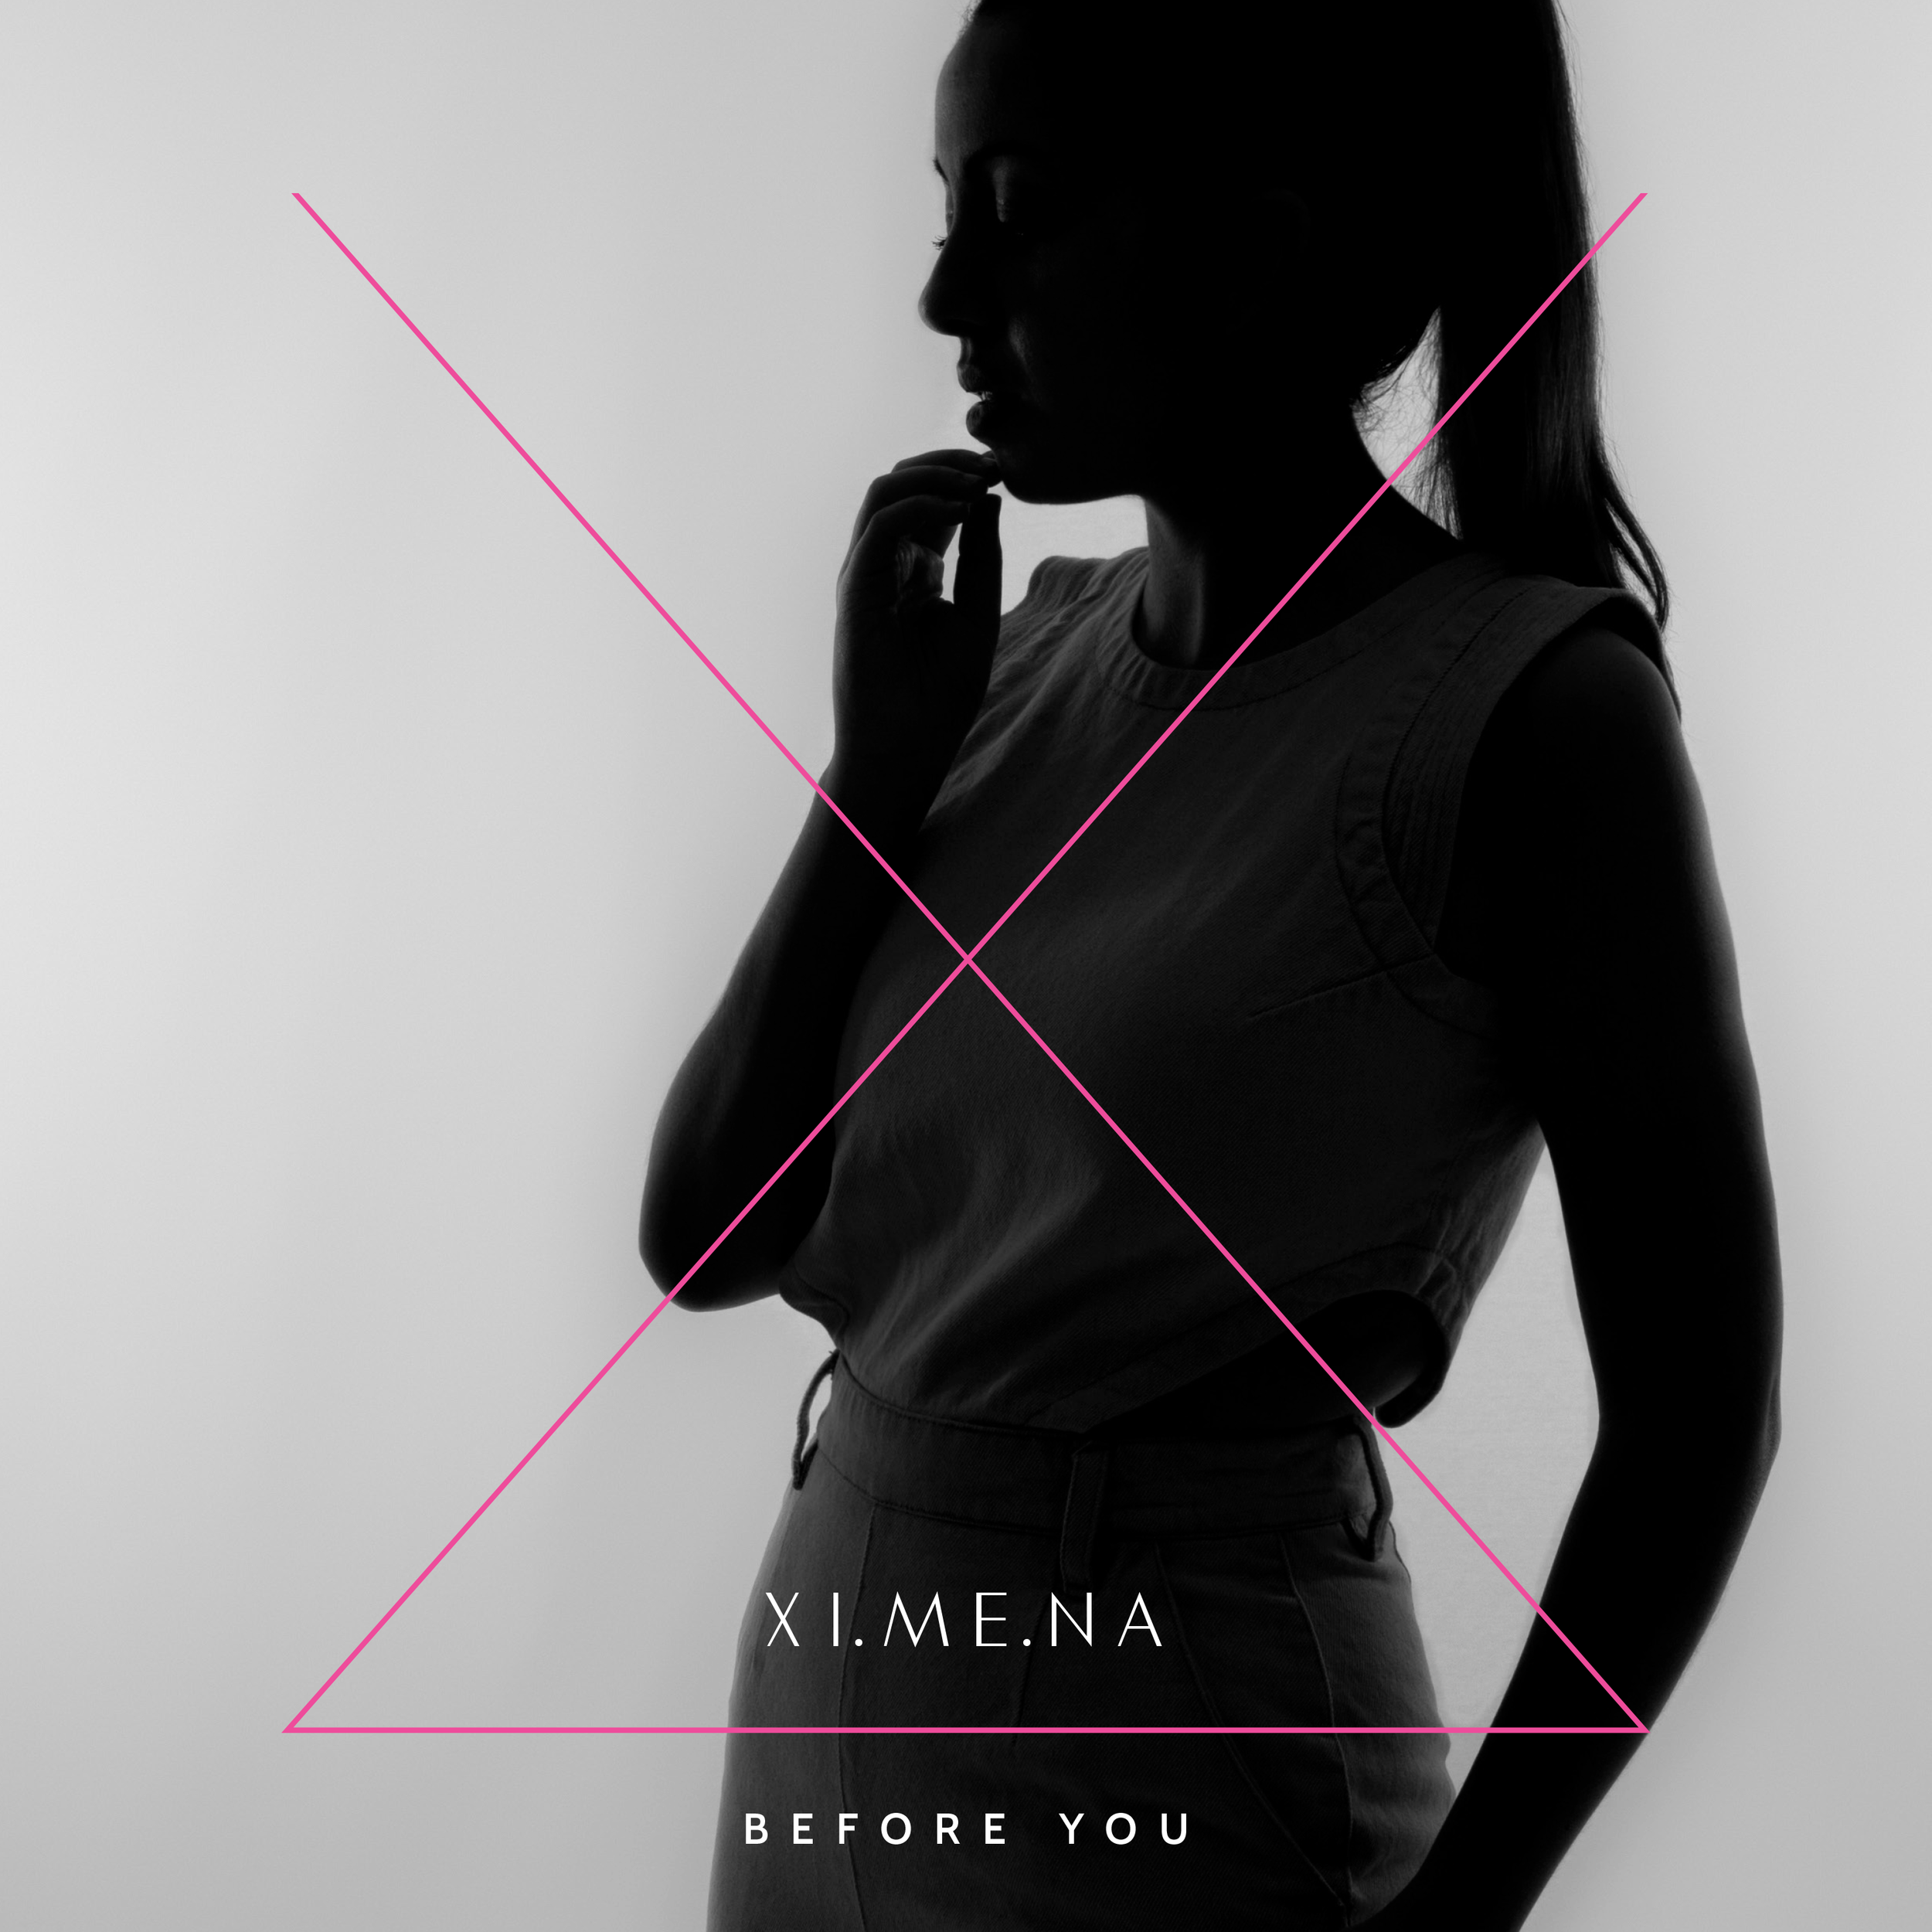 ximena-ep-before-you-cover-square.png